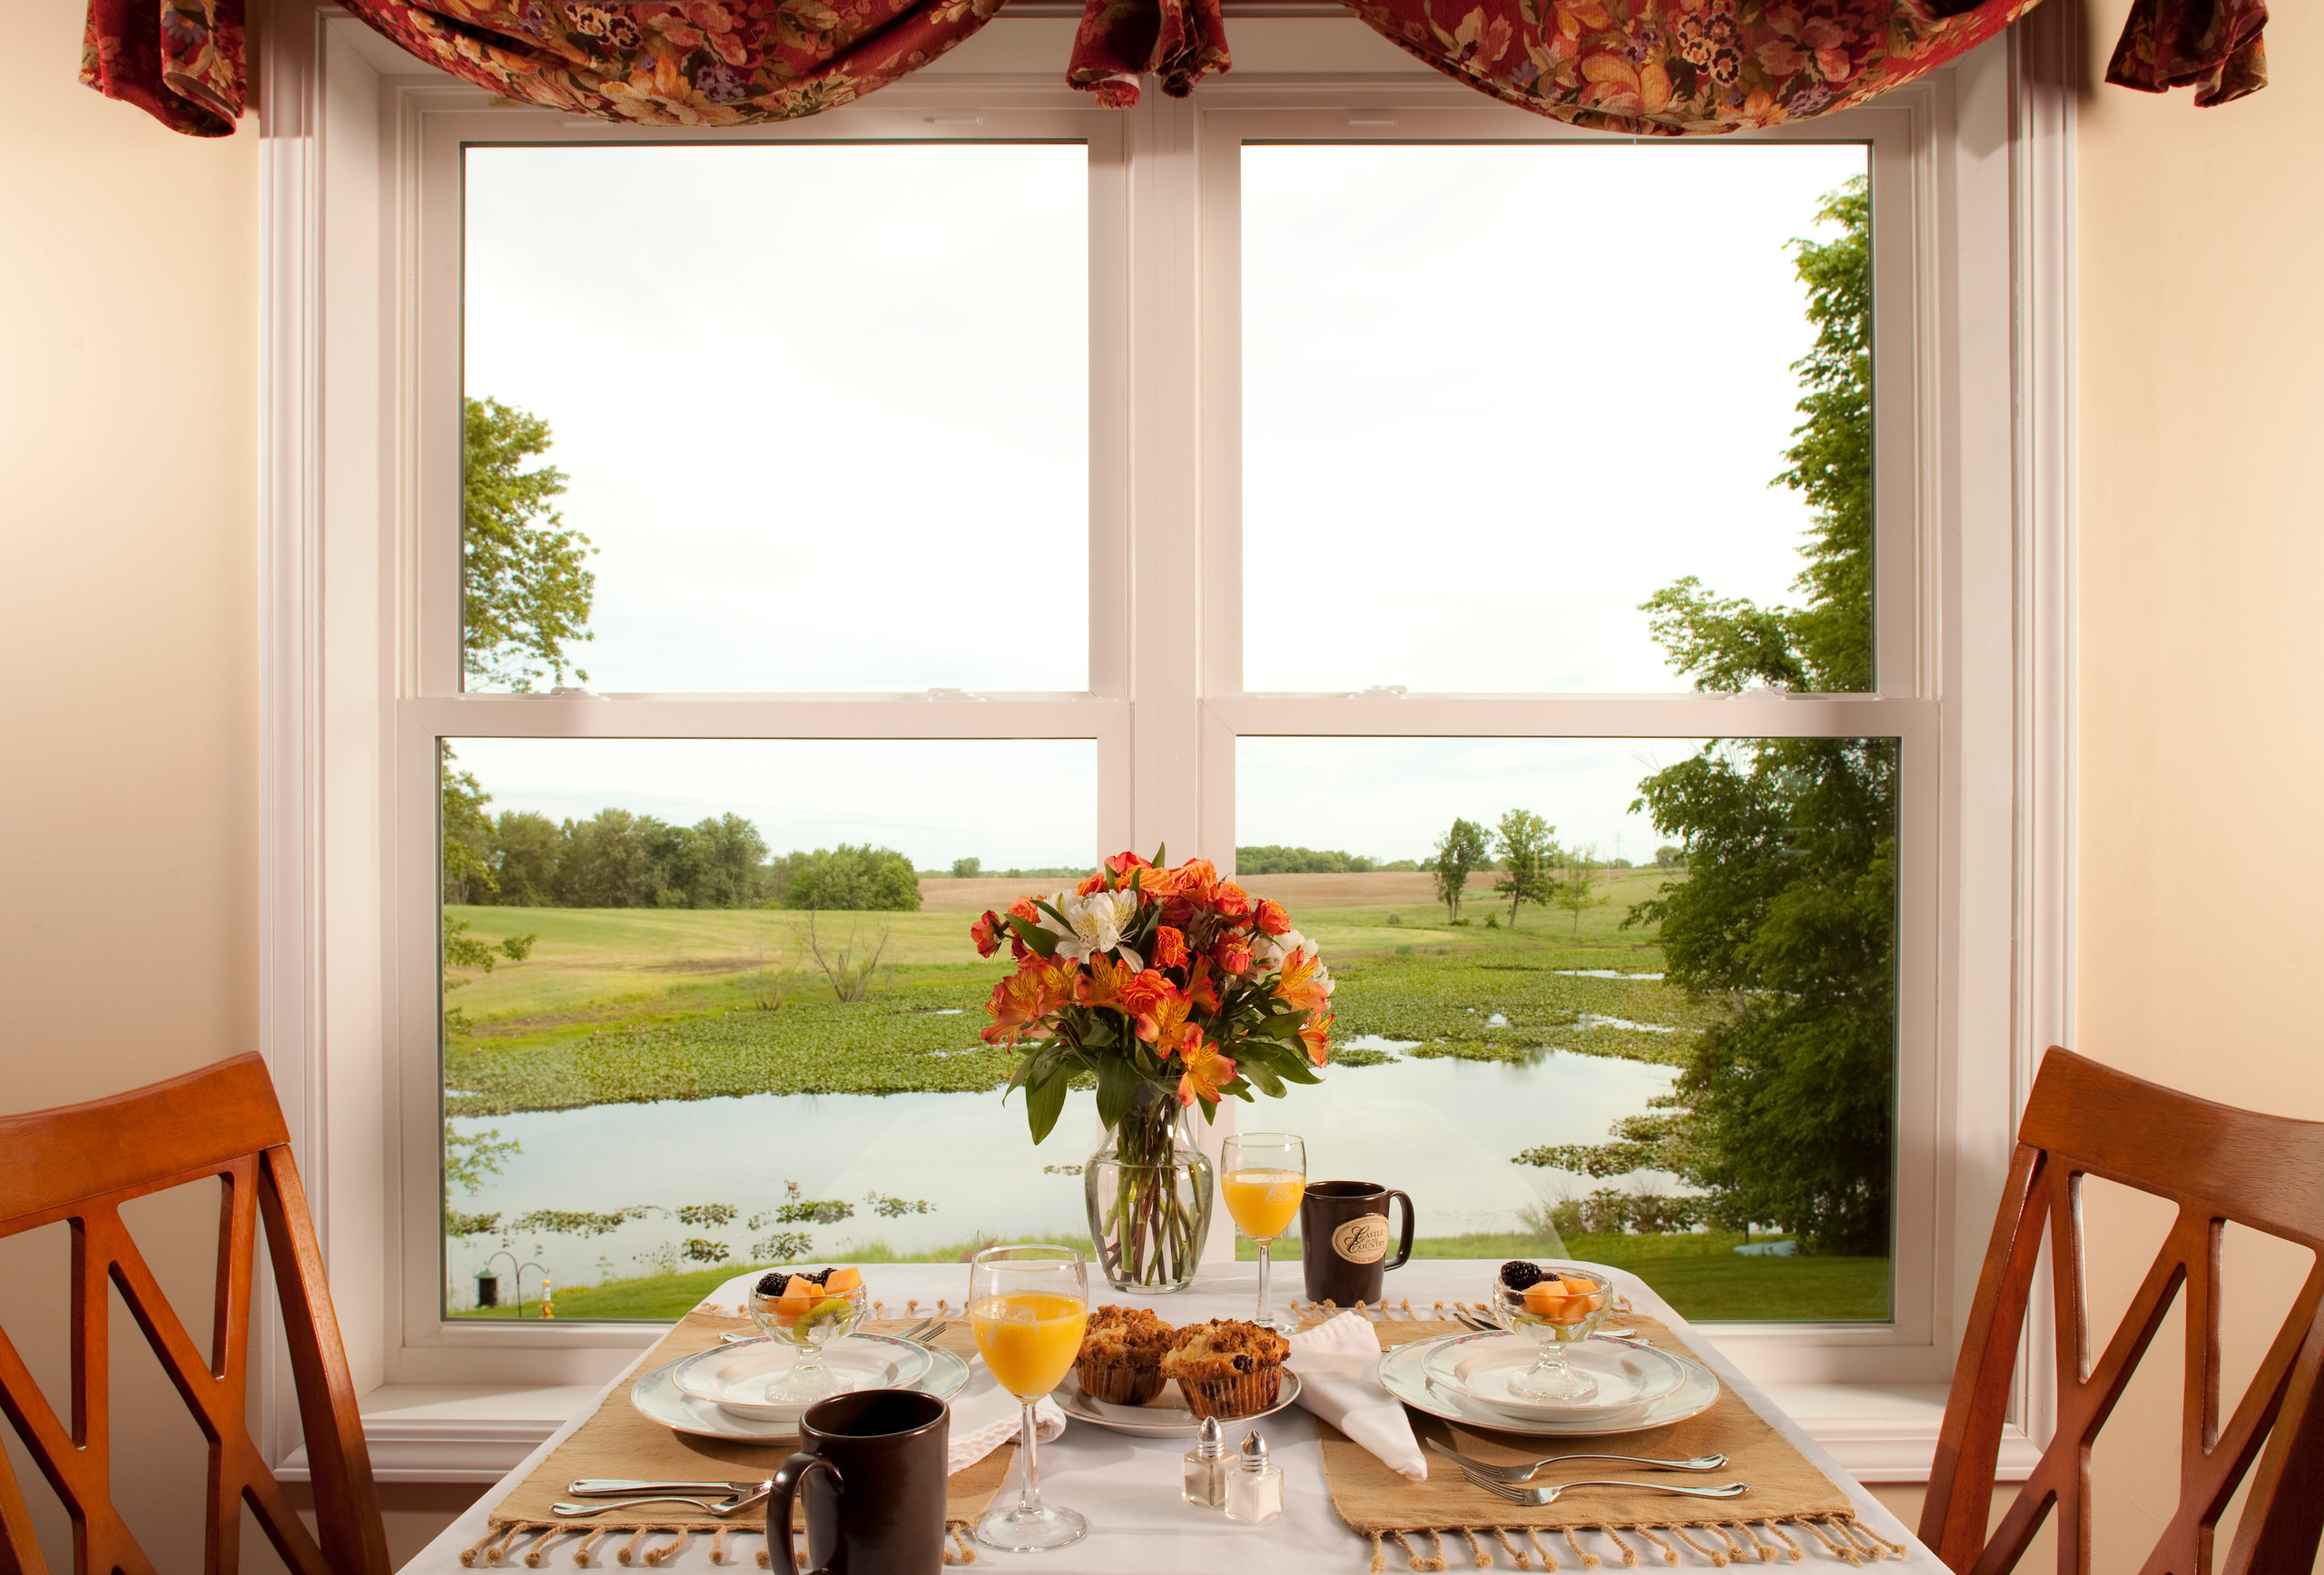 Table set with white plates, muffins, coffee, juice, and fresh flowers by a window overlooking the beautiful grounds